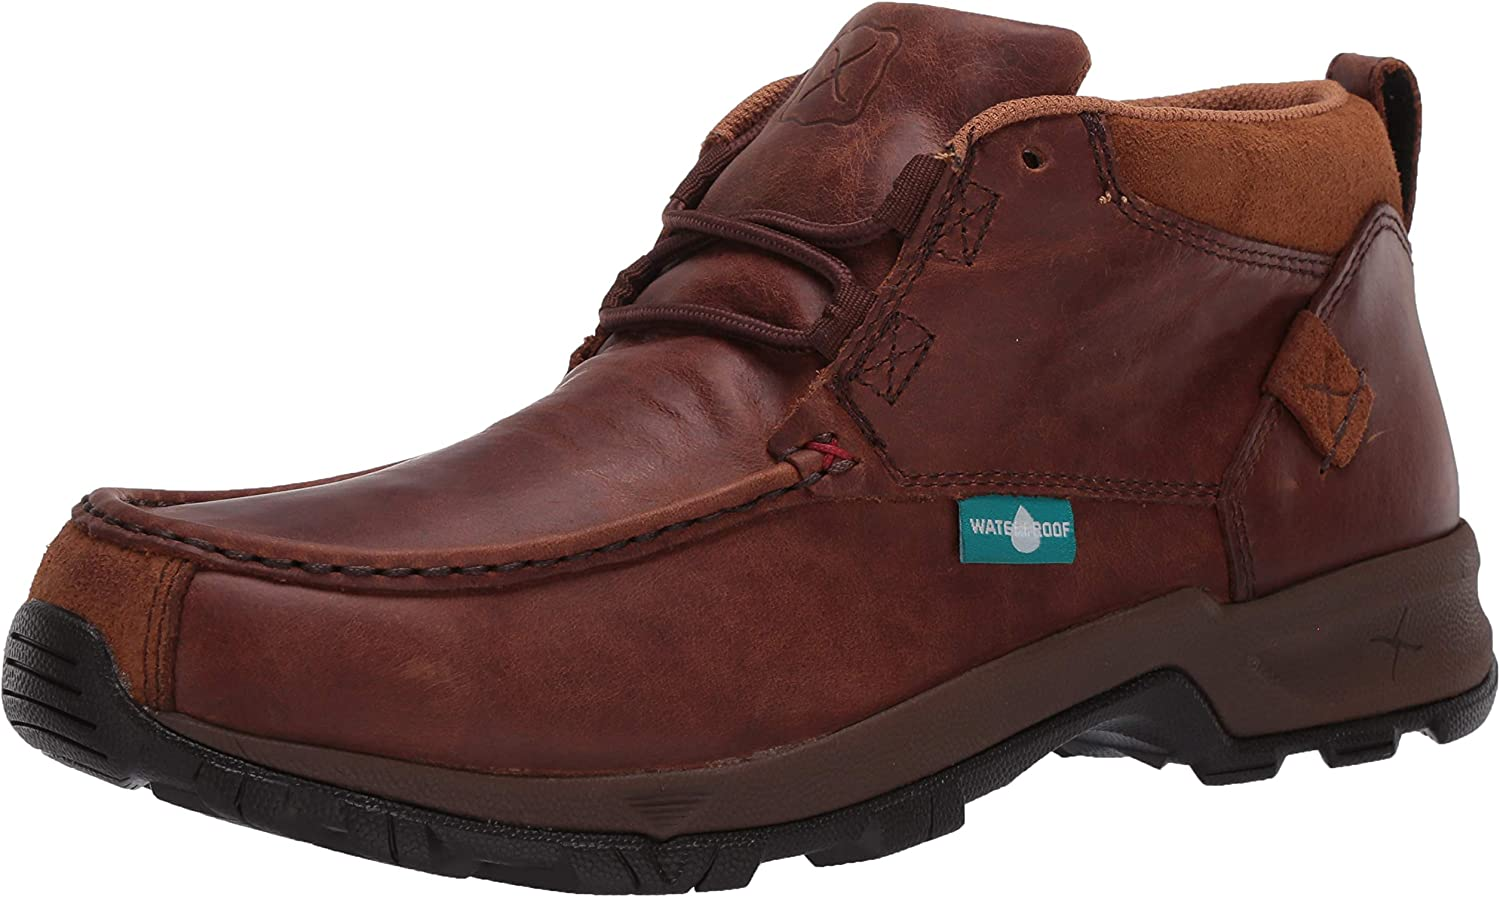 Twisted X Mens Chukka Boot